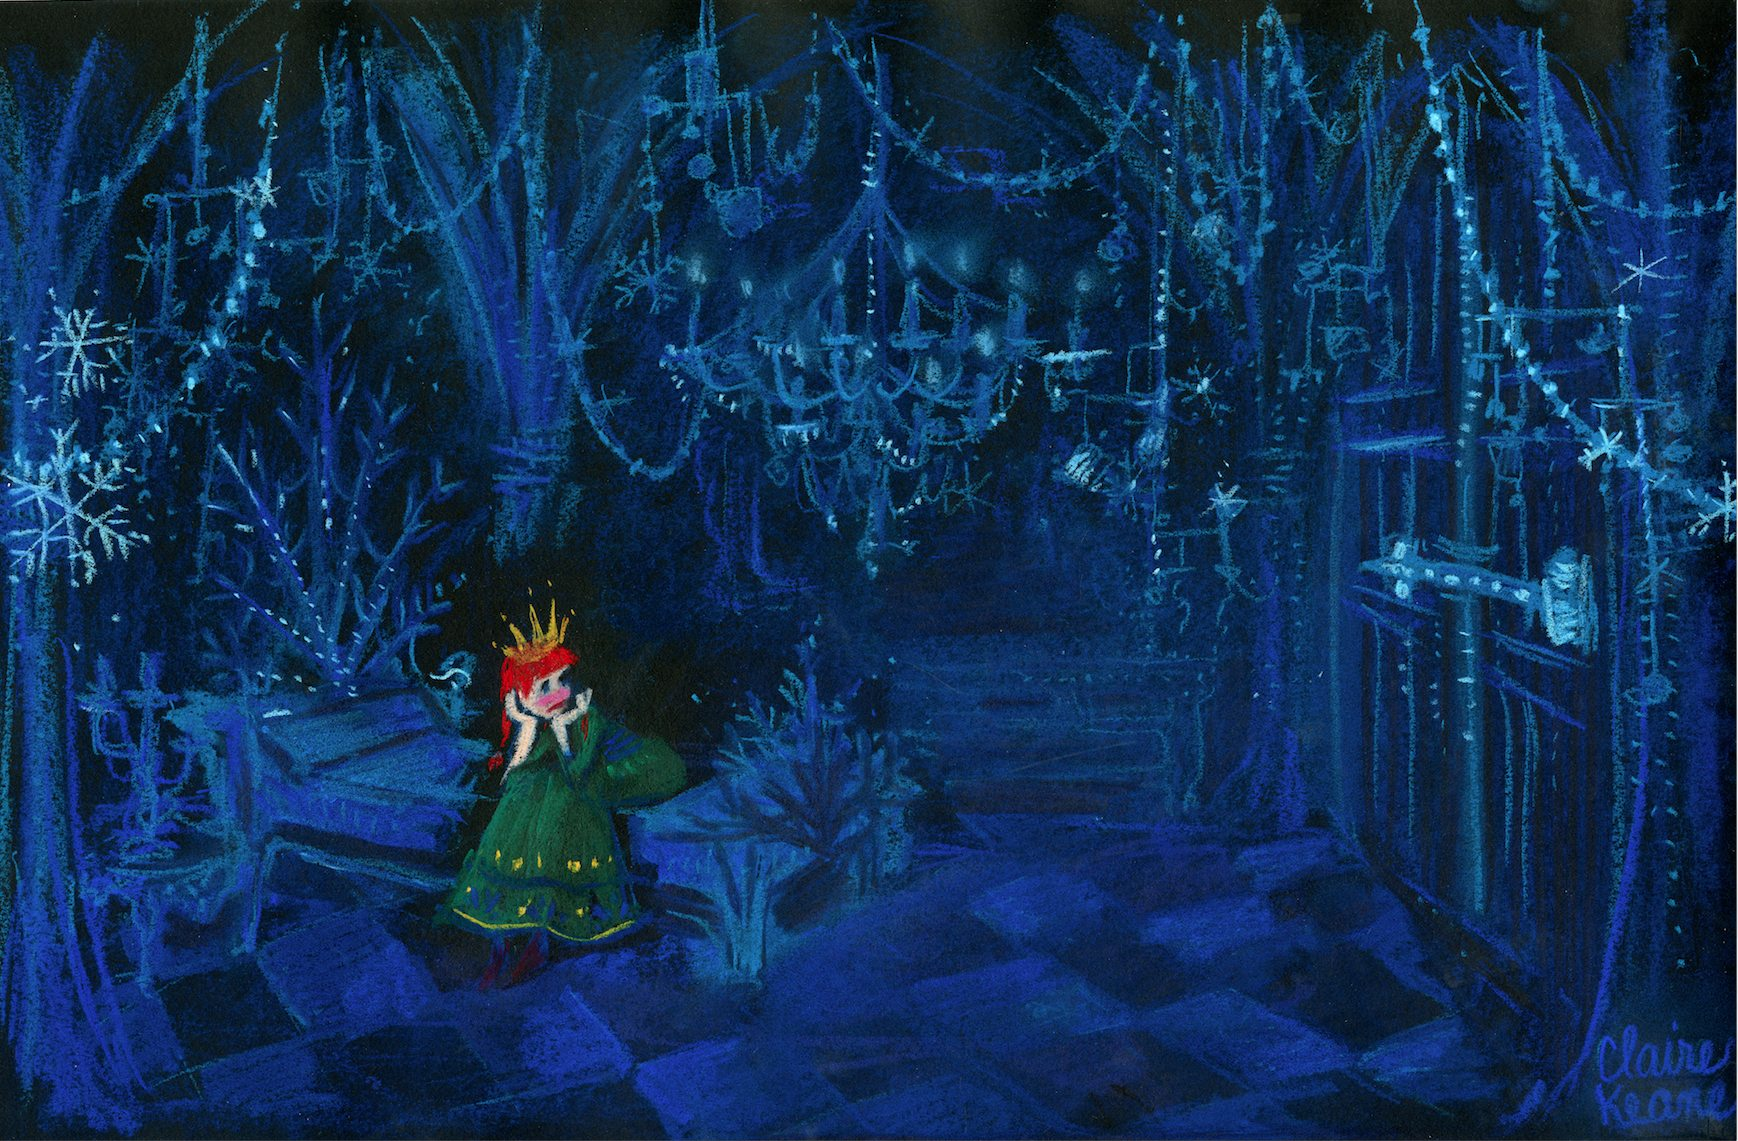 ANNA TRAPPED IN HER ICE BEDROOM / PRISON  VISUAL DEVELOPMENT FOR FROZEN